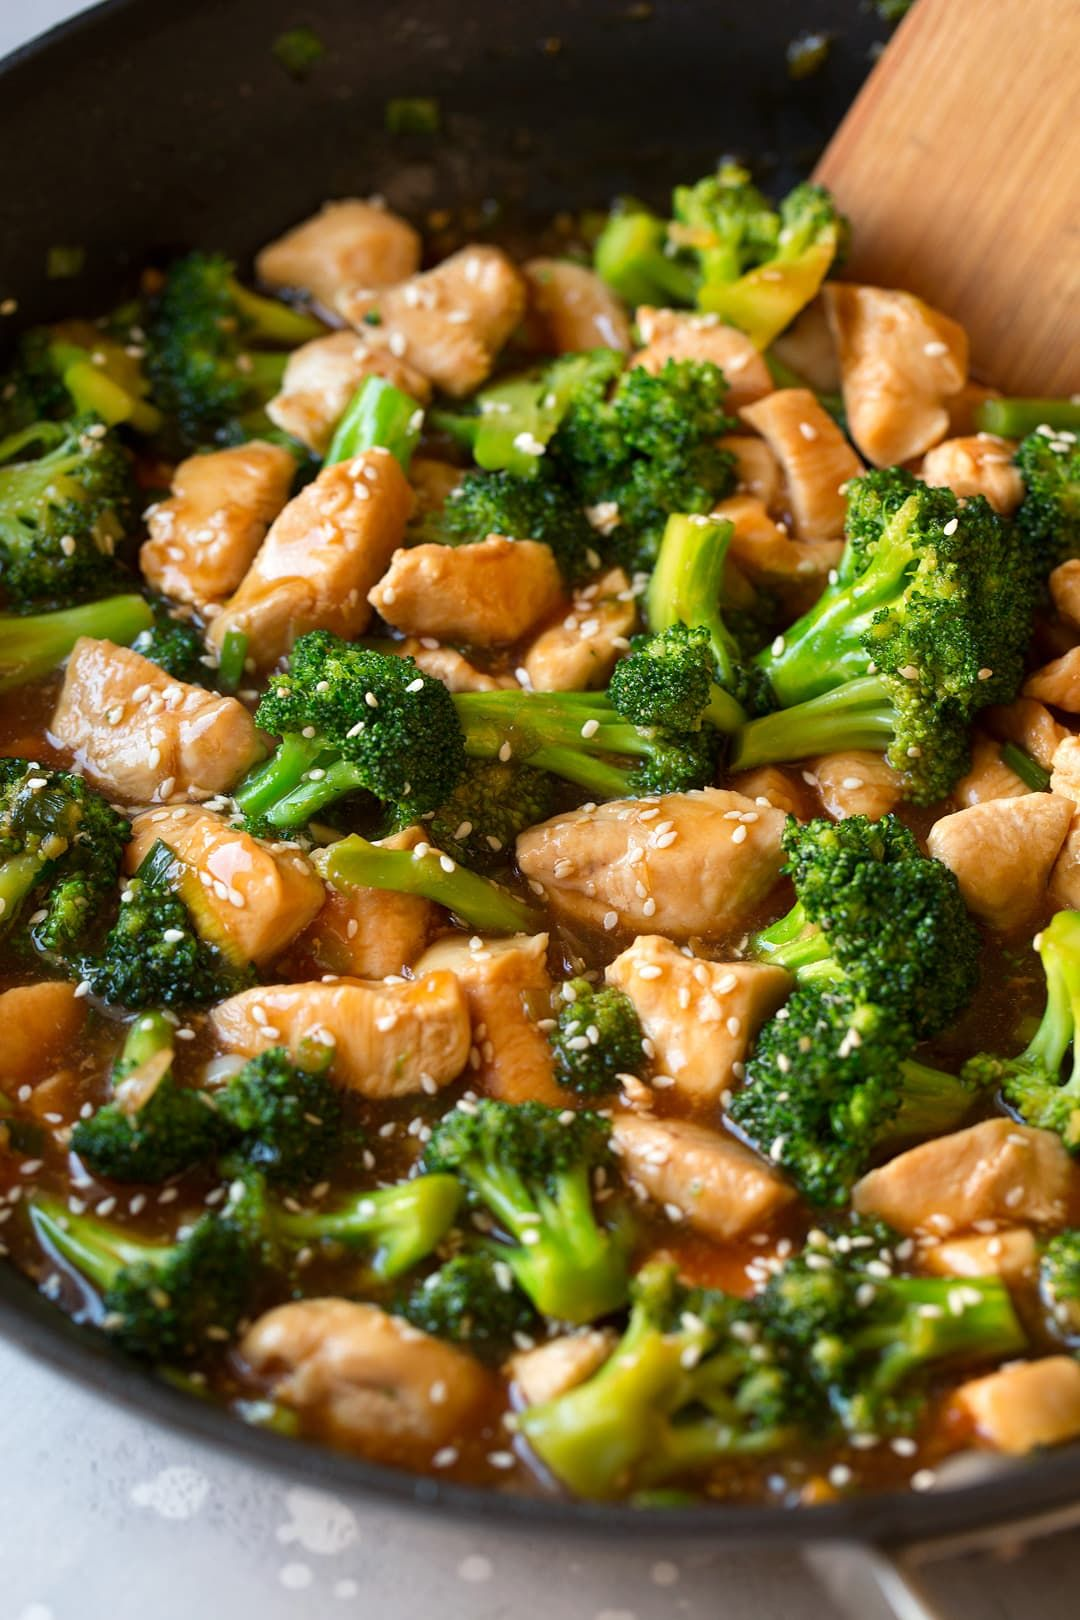 Chicken And Broccoli Stir Fry Recipe Broccoli Recipes Pork Recipes Healthy Dinner Recipes